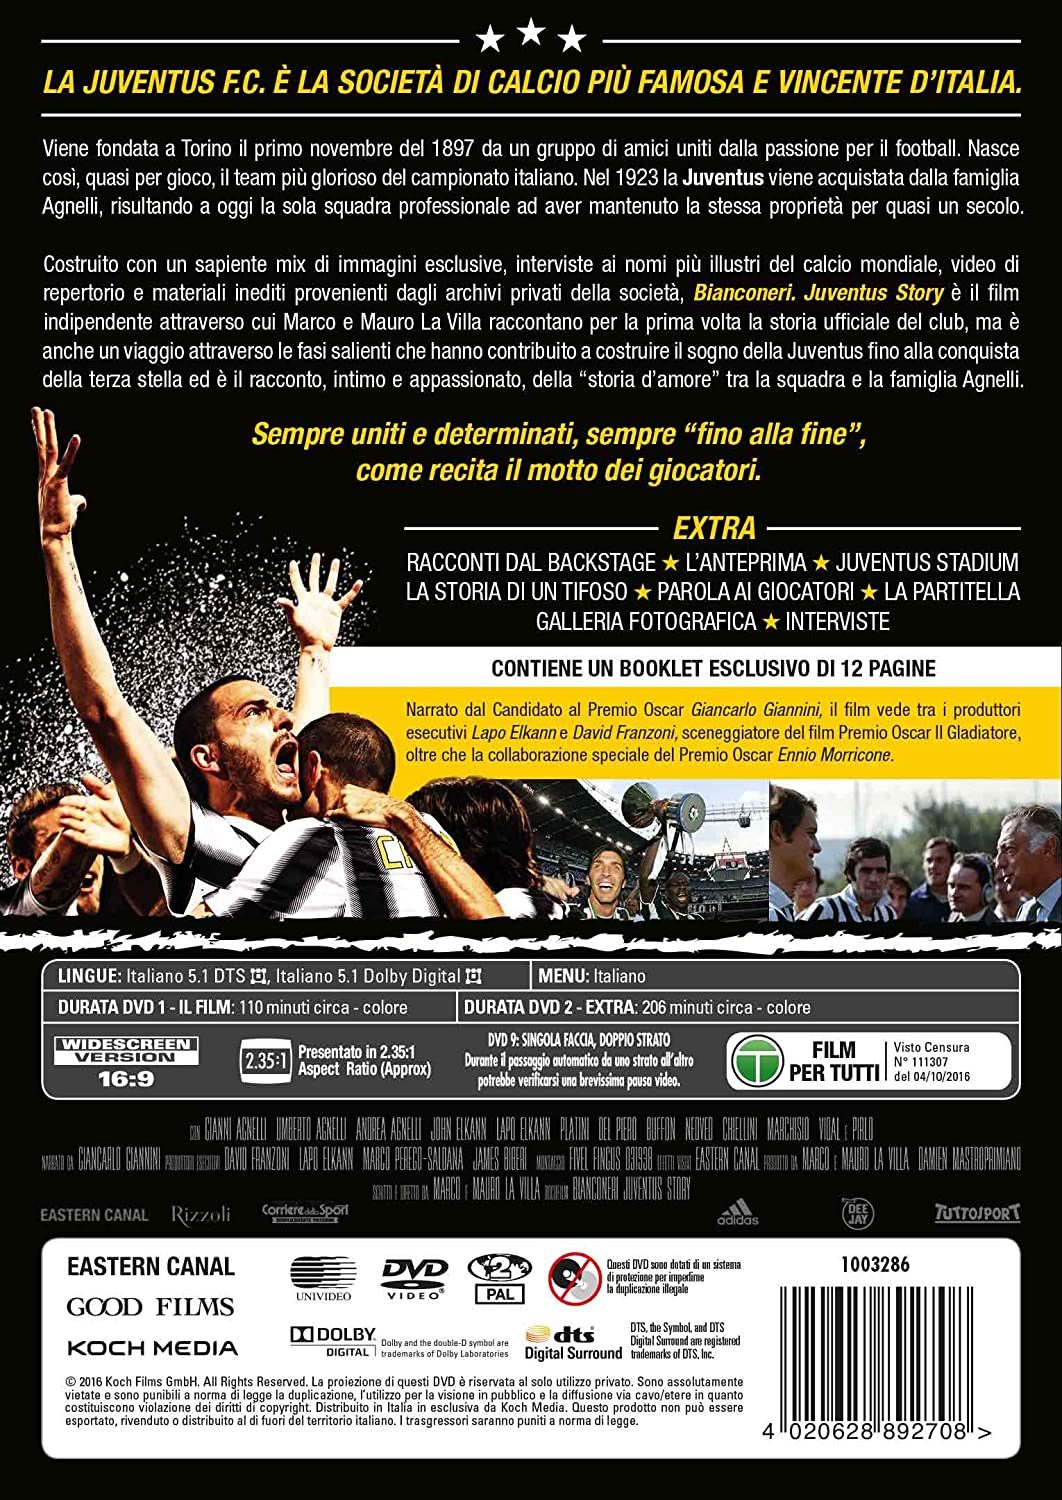 Bien-aimé Bianconeri Juventus Story - Il Film (2 DVD): Amazon.it: Gianluigi  XD66